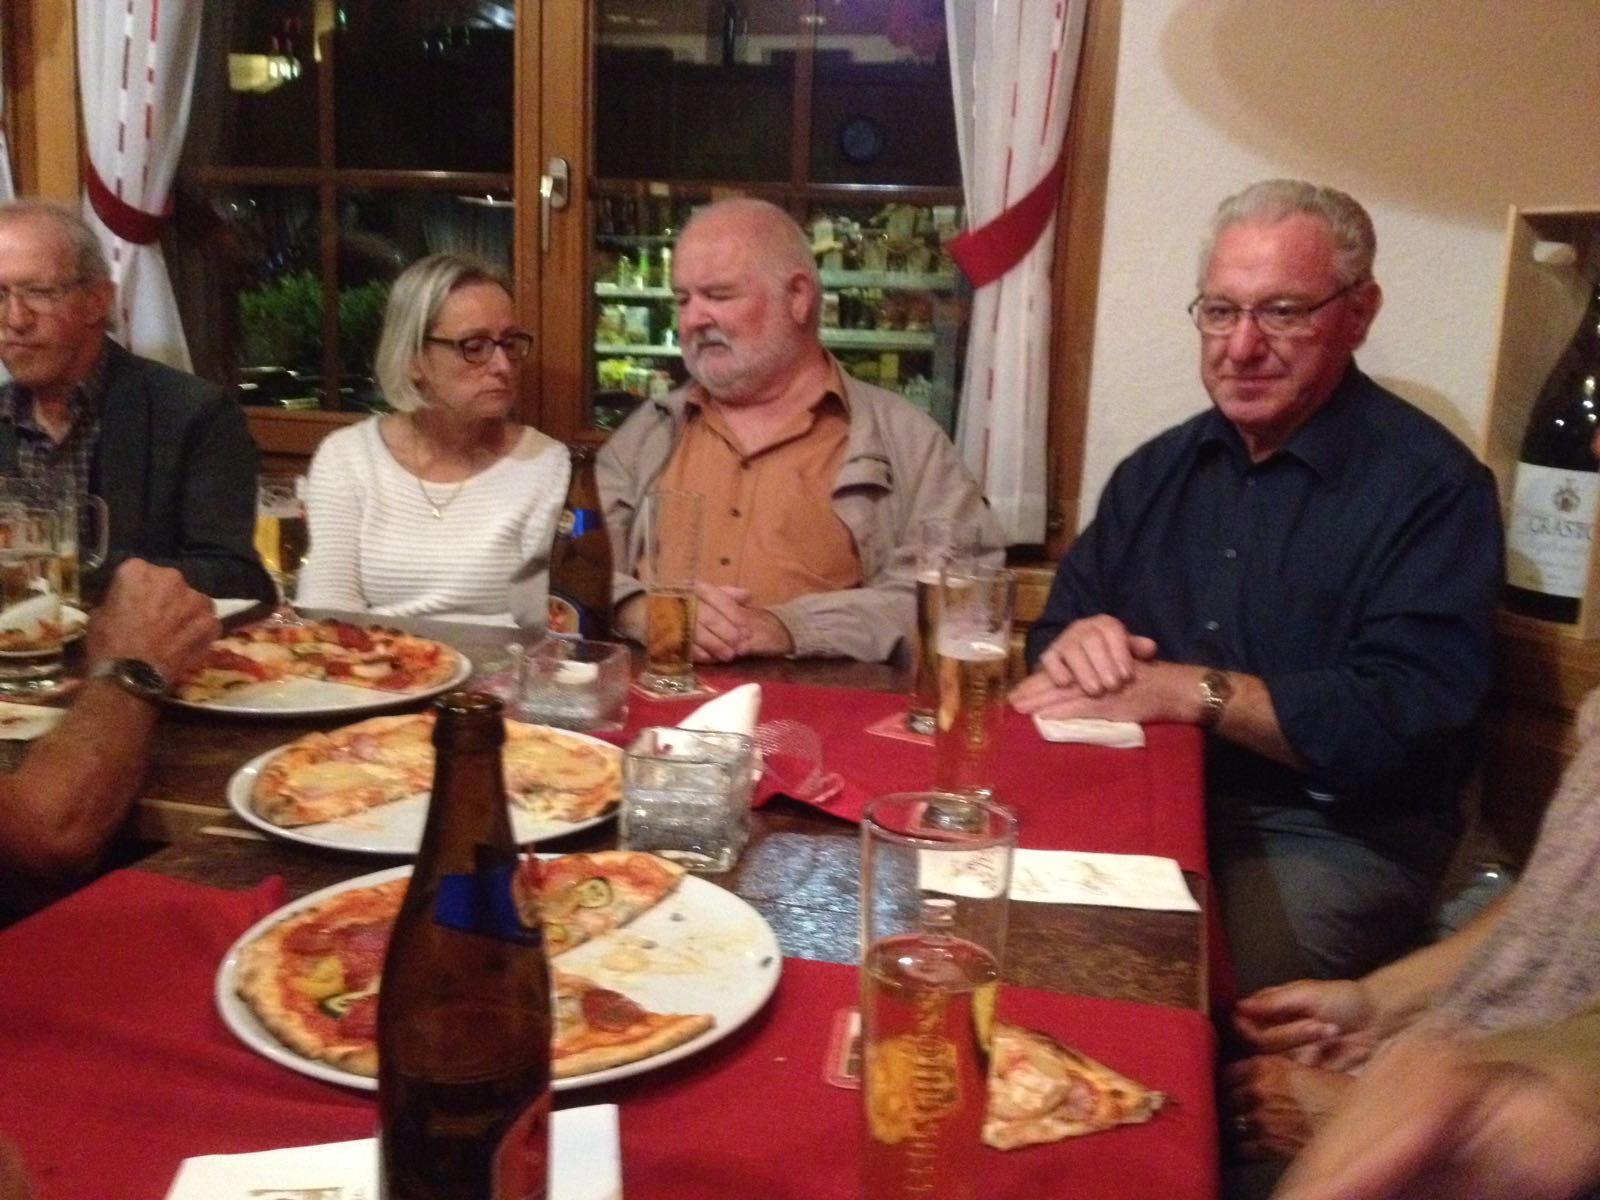 Pizza Essen im Restaurant Baumgarten in Alpnach (3.10.2018)